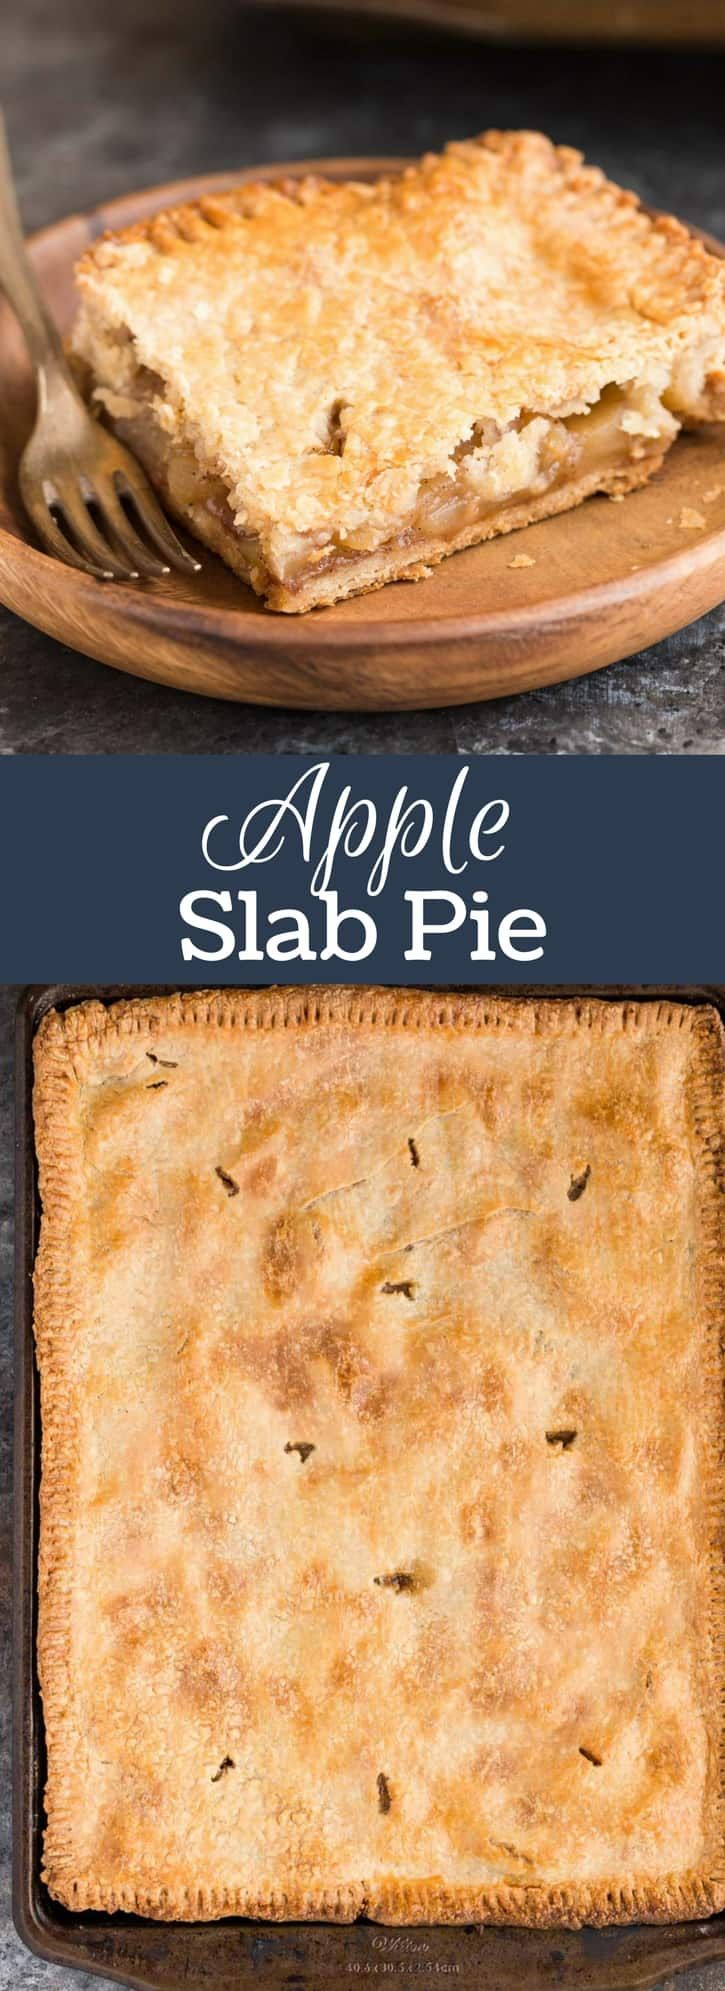 This Apple Slab Pie is way better than a traditional pie! It features a sturdy brown butter crust and gooey apple cinnamon filling--full step-by-step recipe on bakedbyanintrovert.com #apple #pie #brownbutter #piecrust